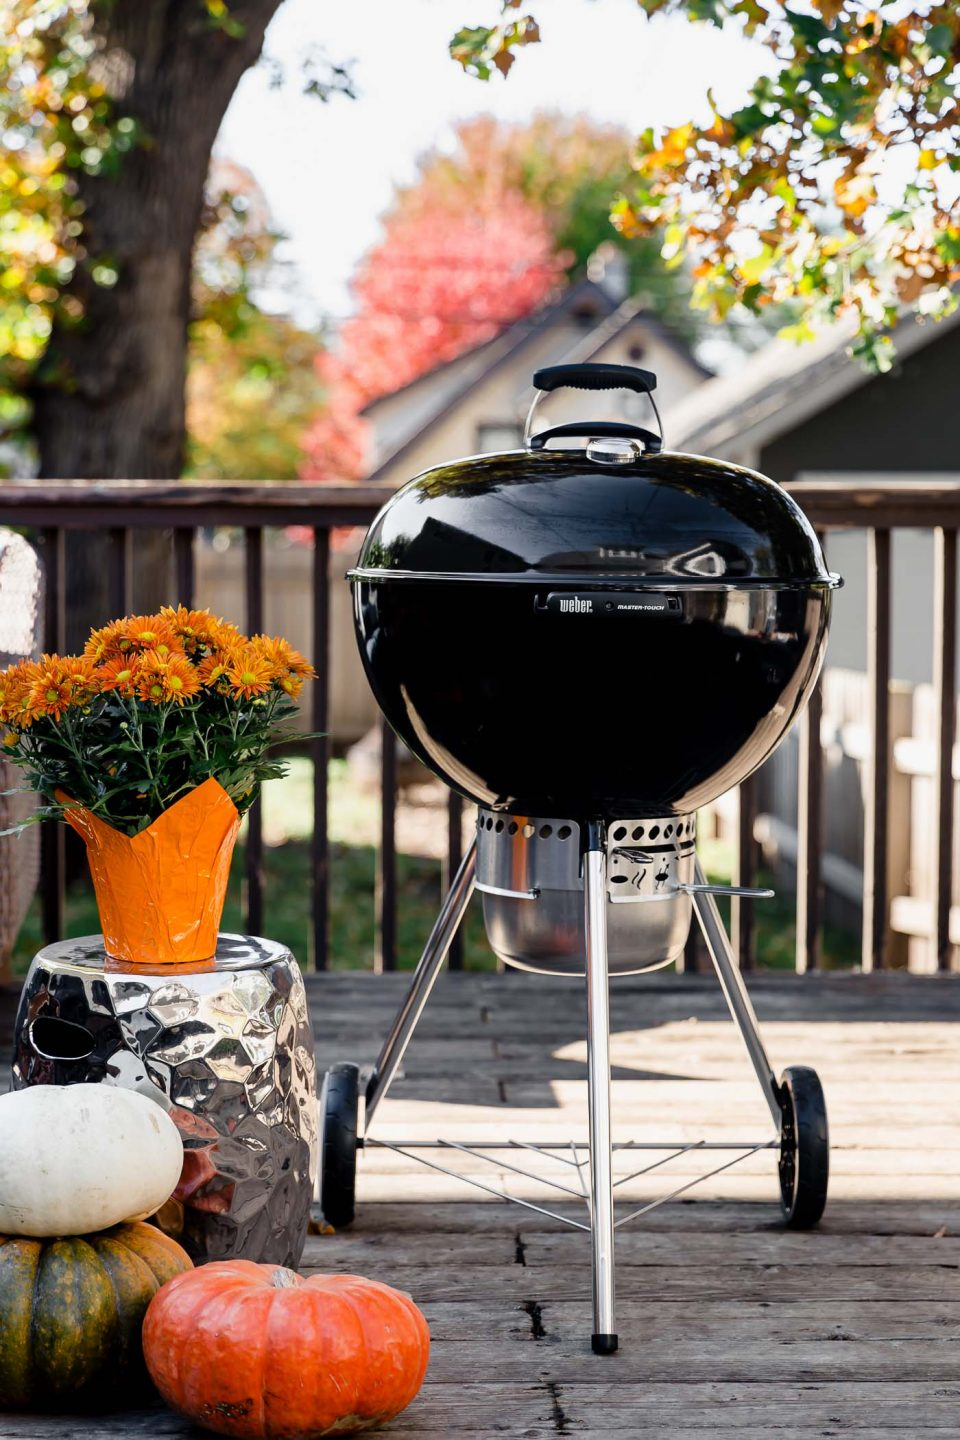 Weber 22-inch Kettle Grill from The Home Depot. Grill is on a deck, surrounded by orange mums & pumpkins. There is a tree in the backyard with orange and green leaves.